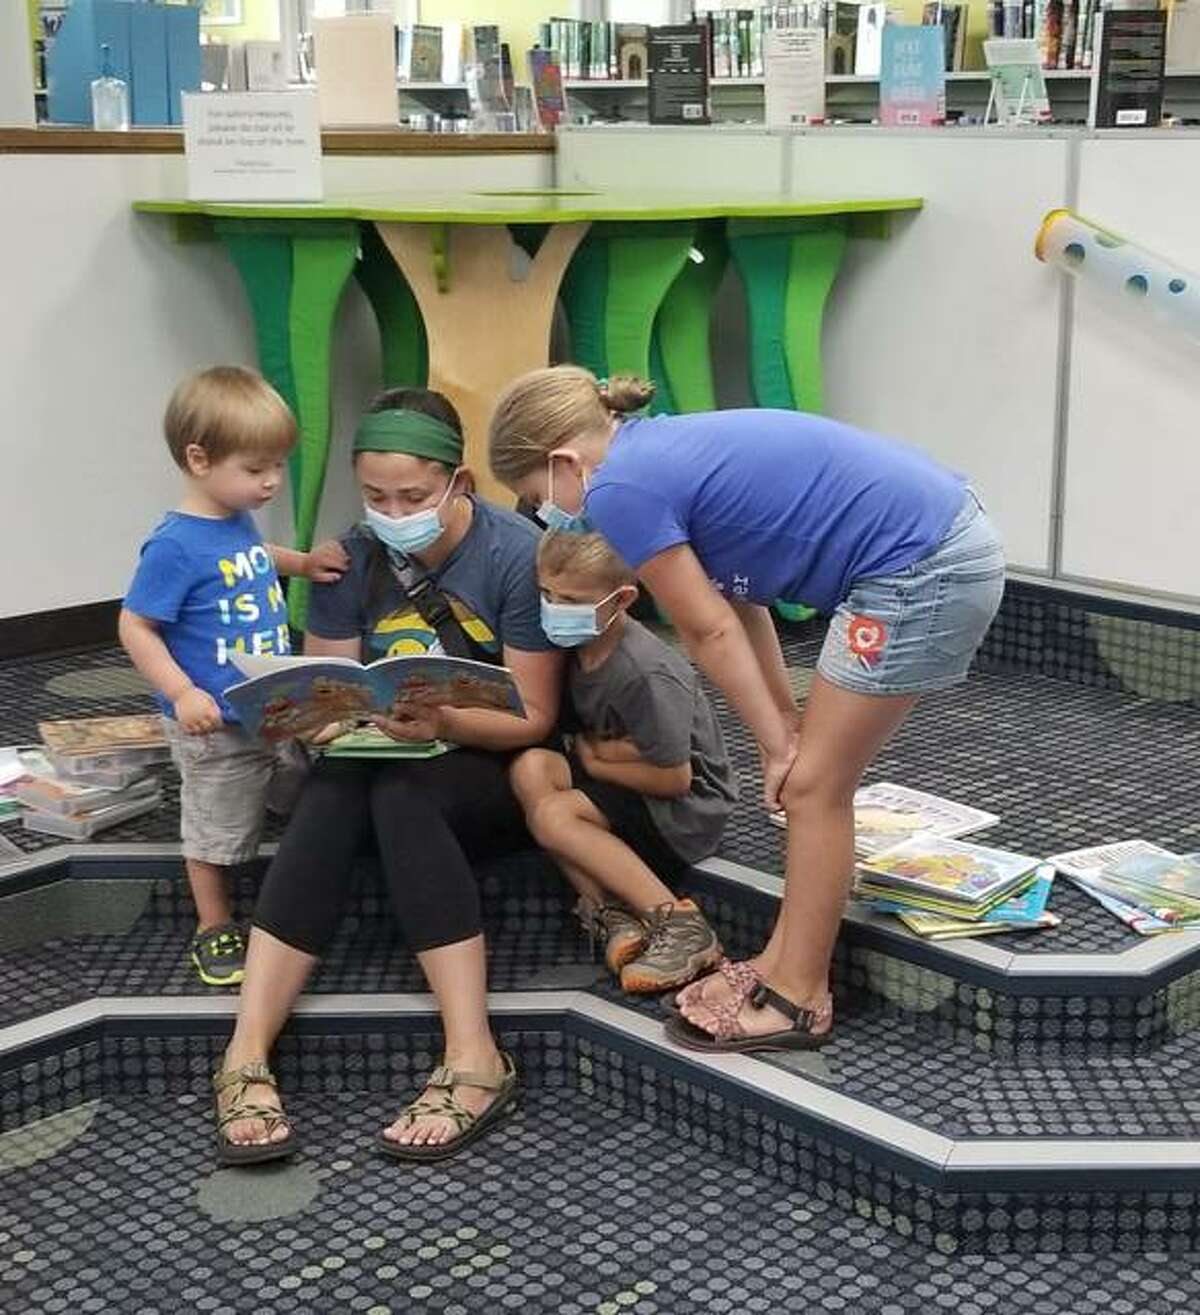 Library patron Maggie Popp reads to Jude, Hayden and Naomi while their siblings look for books.